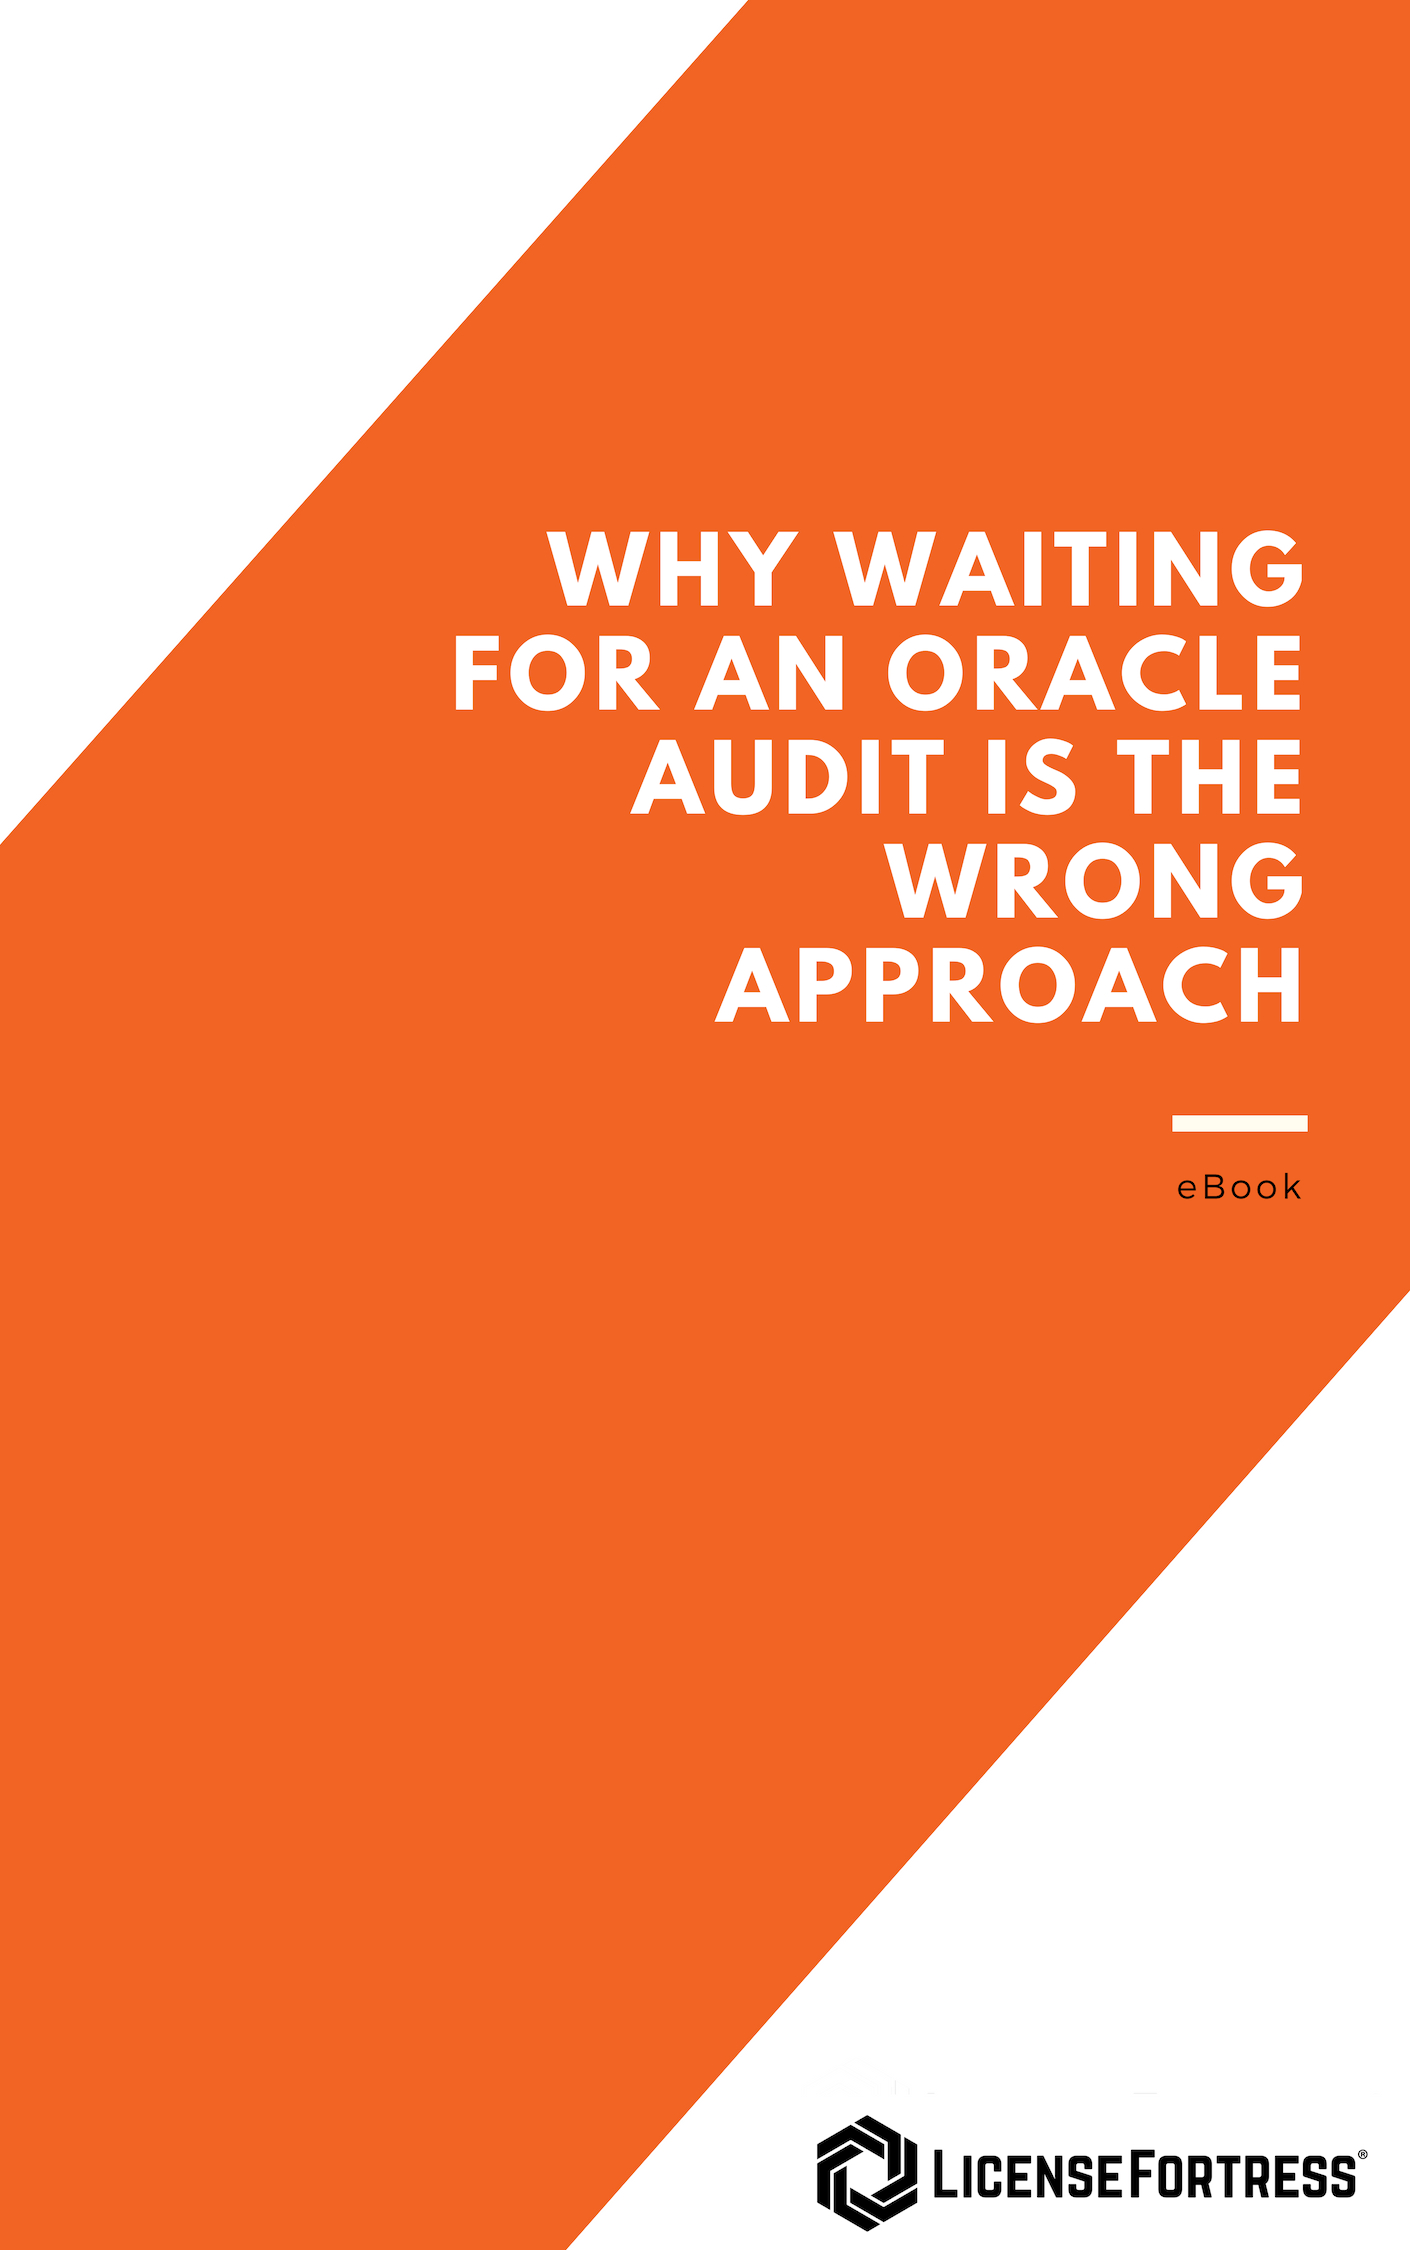 Why Waiting for an Oracle Audit is the Wrong Approach